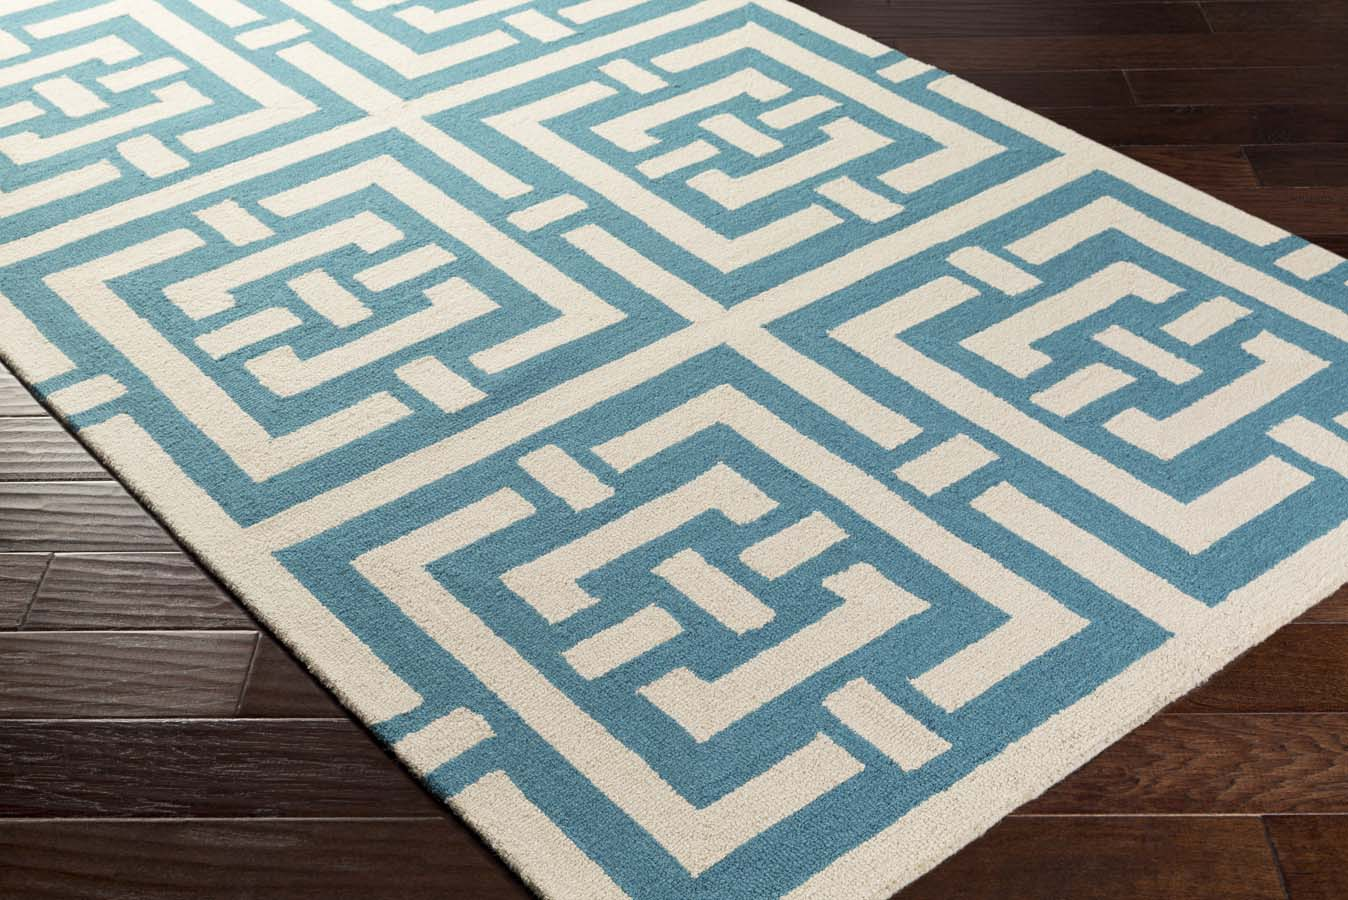 Artistic Weavers Impression AWIP-2188 Libby Teal/Ivory Rug